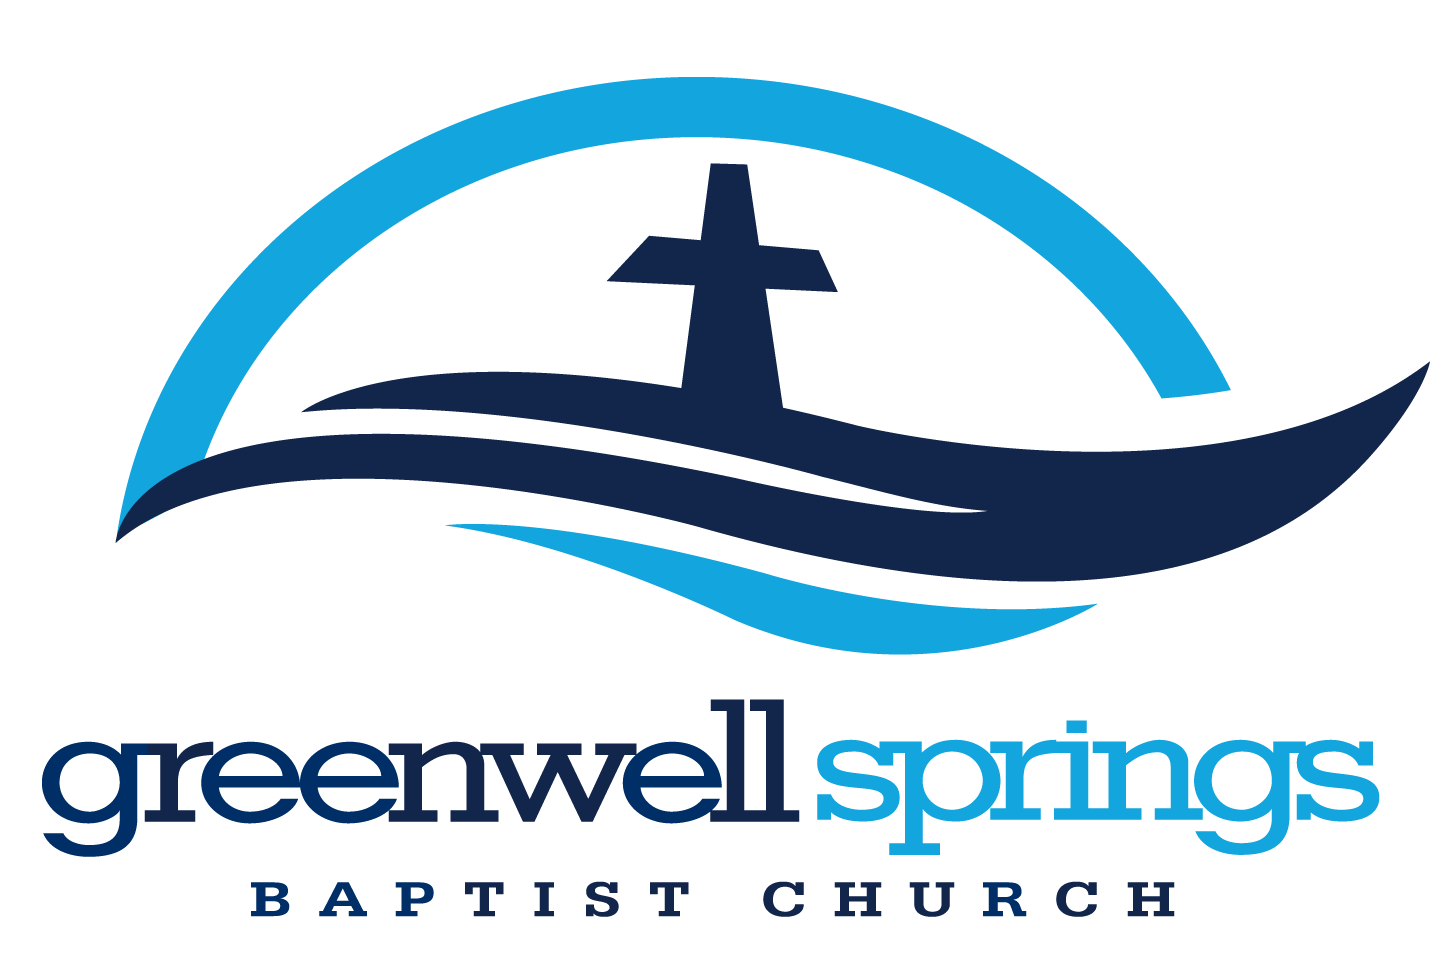 Greenwell Springs Baptist Church